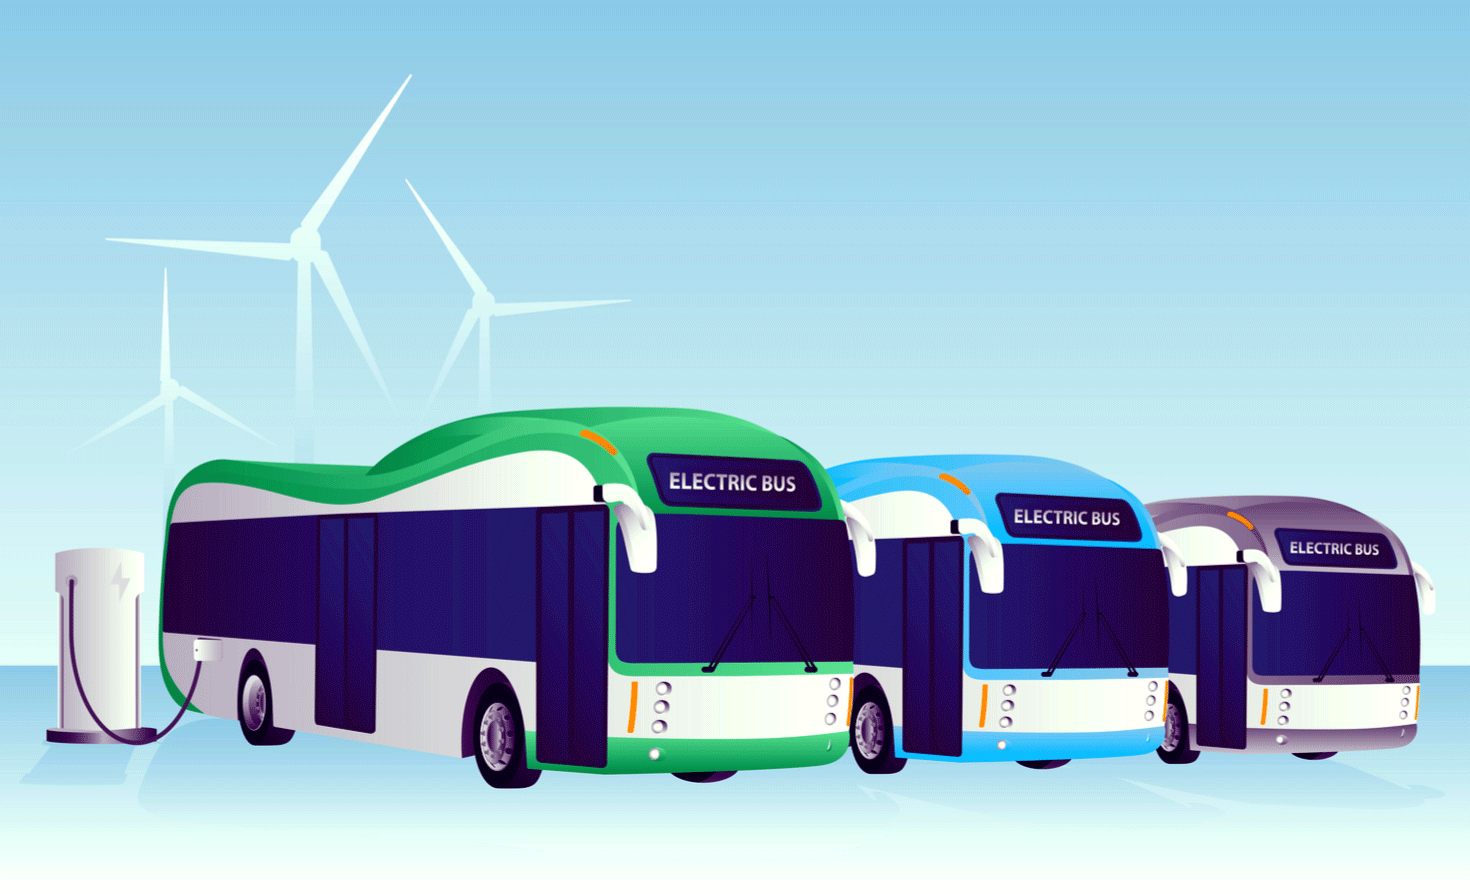 Demand for Electric Buses to Rise in Response to Increasing Pollution Levels